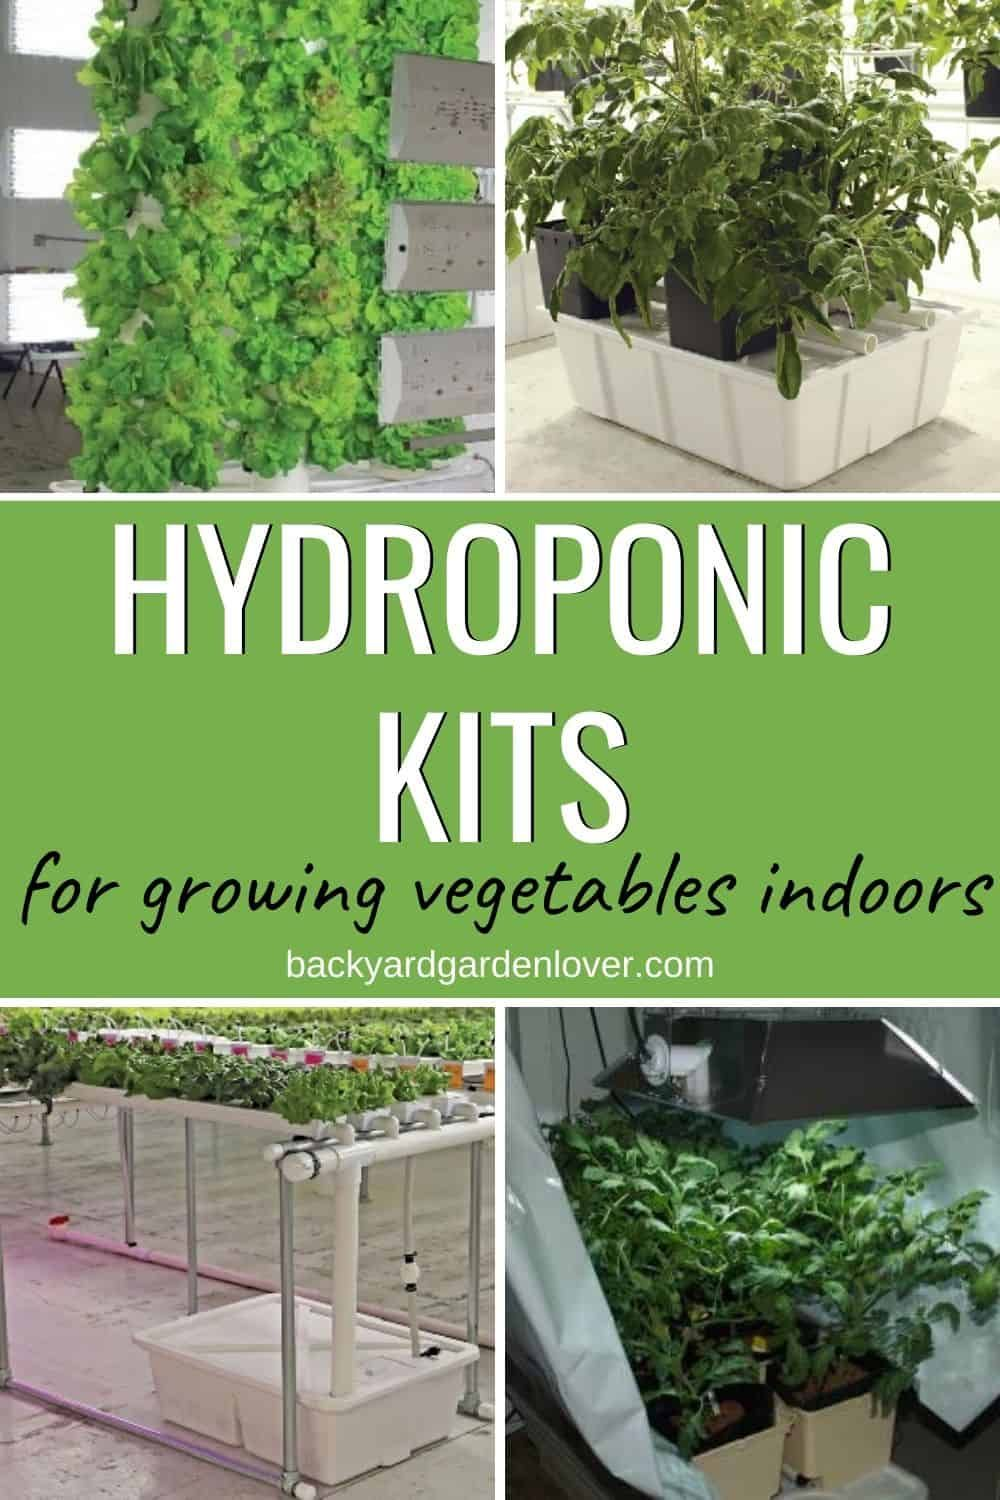 Complete Hydroponic Kits For Growing Vegetables Indoors In 2020 Growing Vegetables Growing Vegetables Indoors Hydroponics